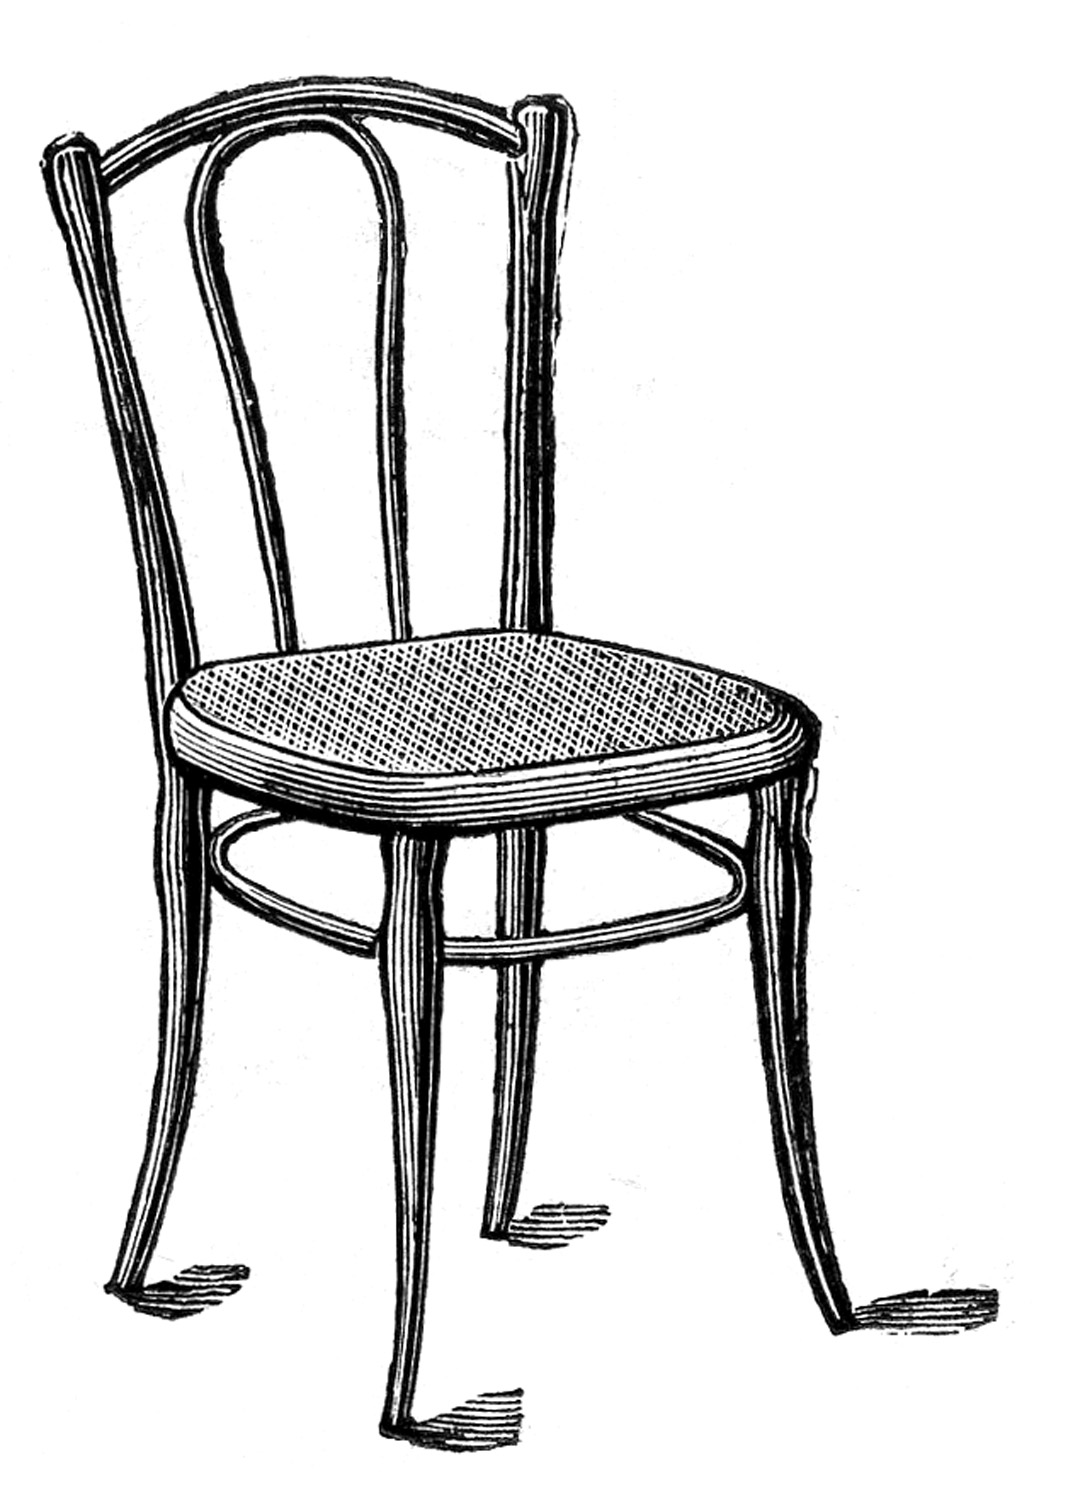 images the graphics. Chair clipart antique